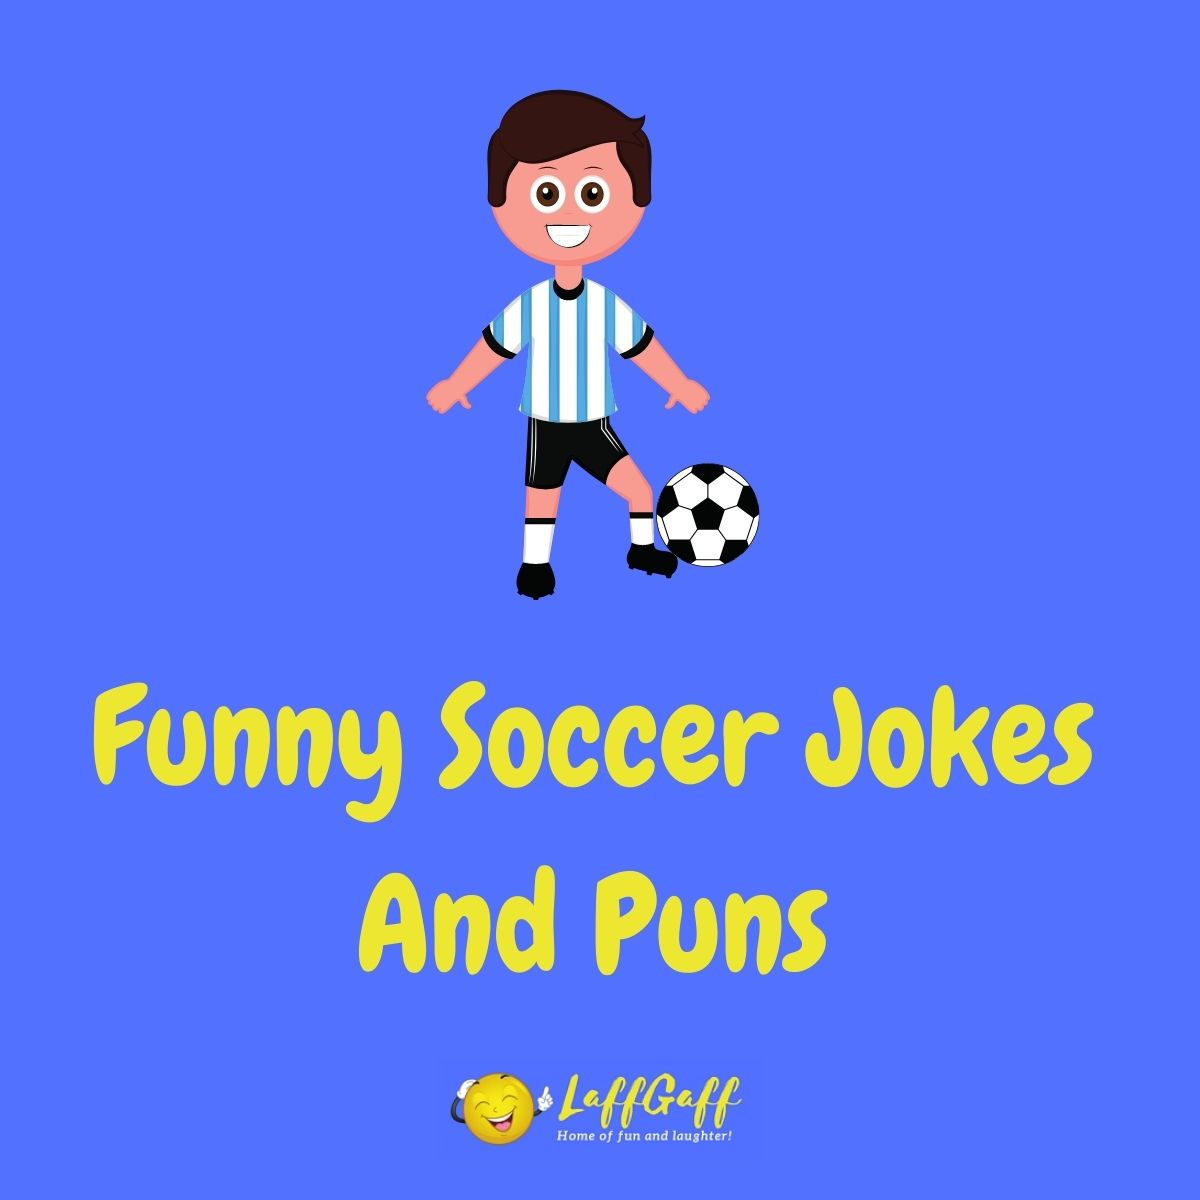 Featured image for a page of funny soccer jokes and puns.